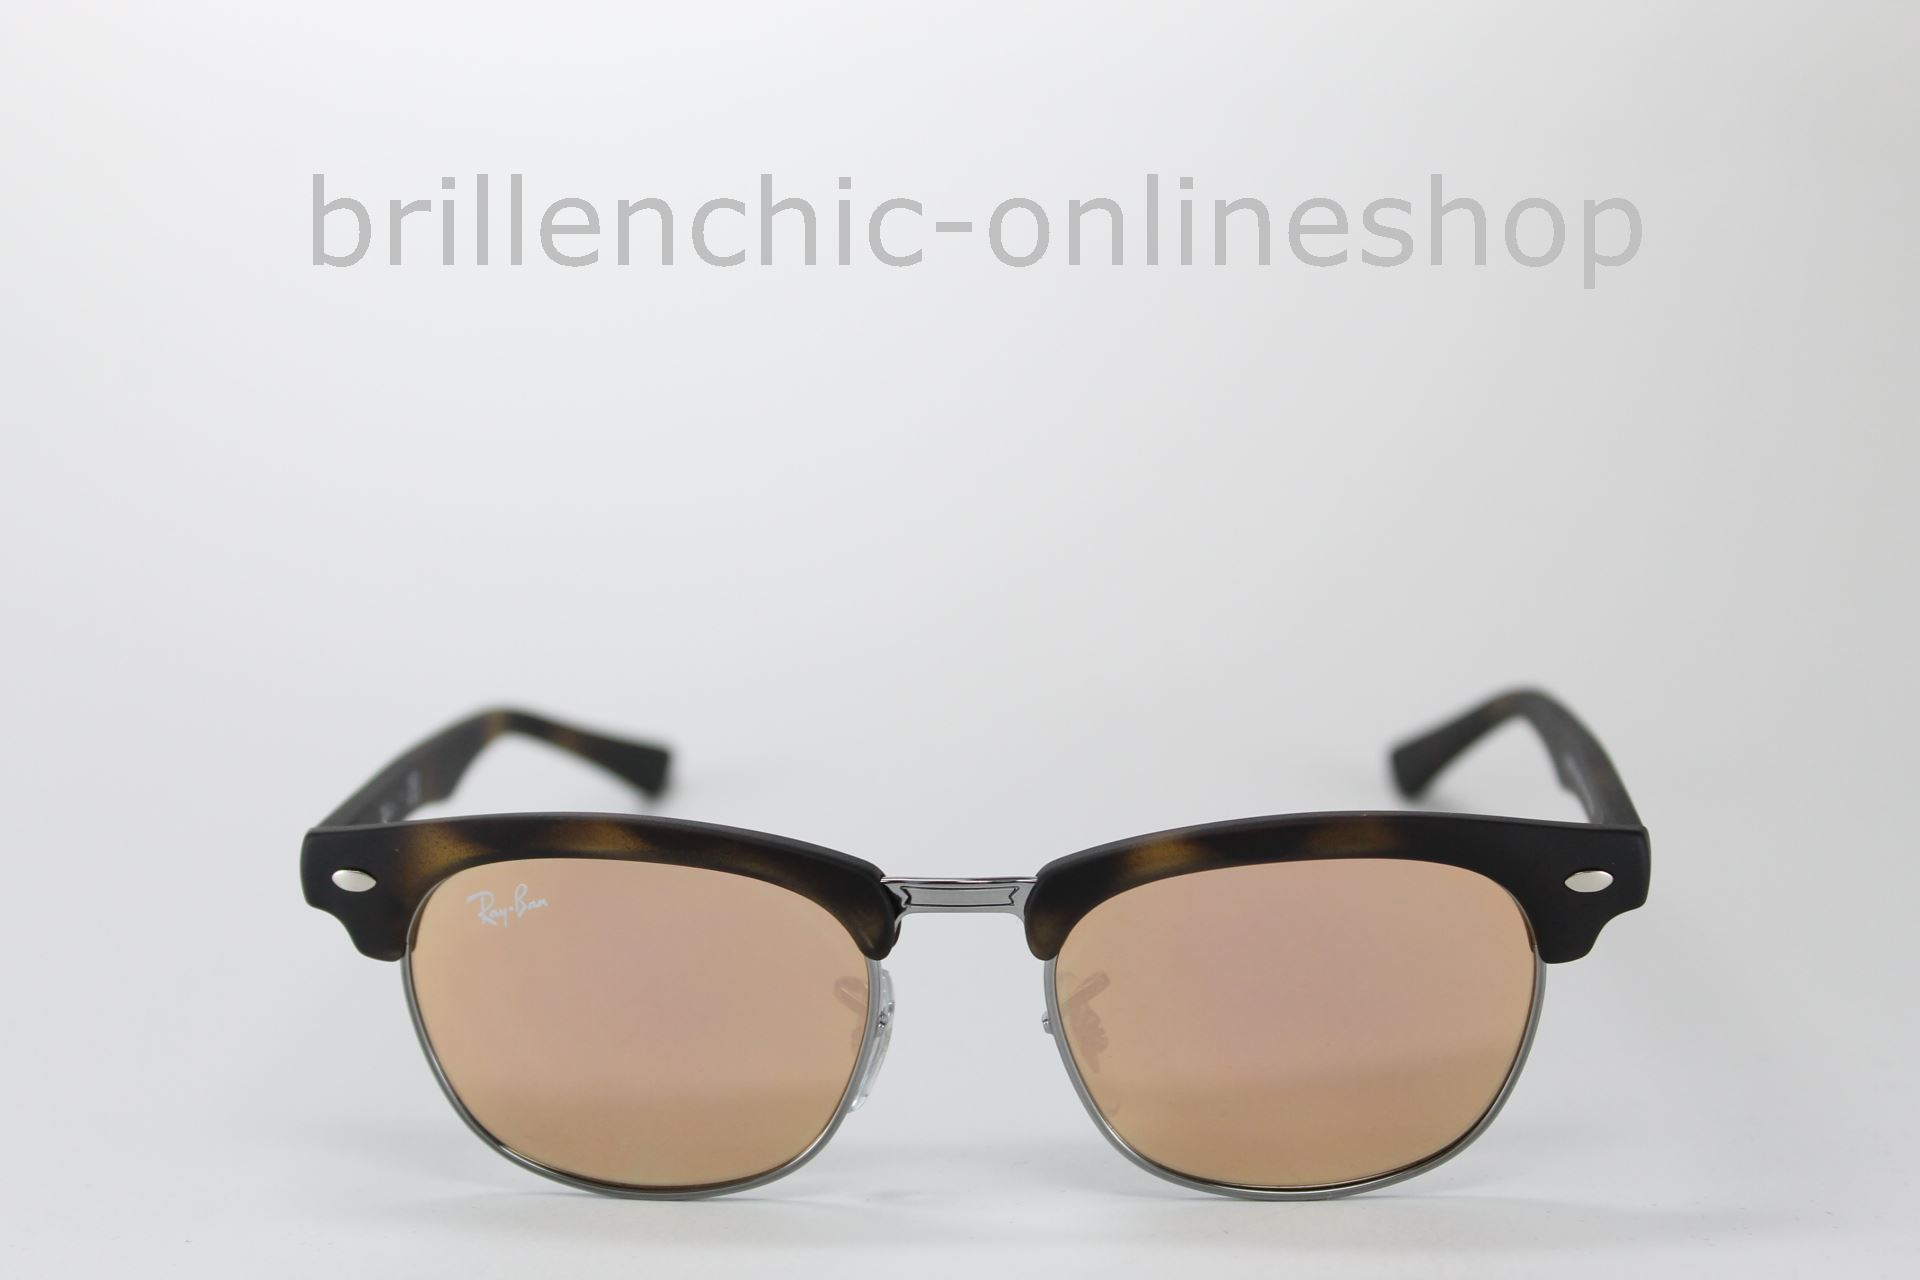 5abcd2122f Brillenchic-onlineshop in Berlin - Ray Ban JUNIOR RJ 9050S 9050 7018 ...